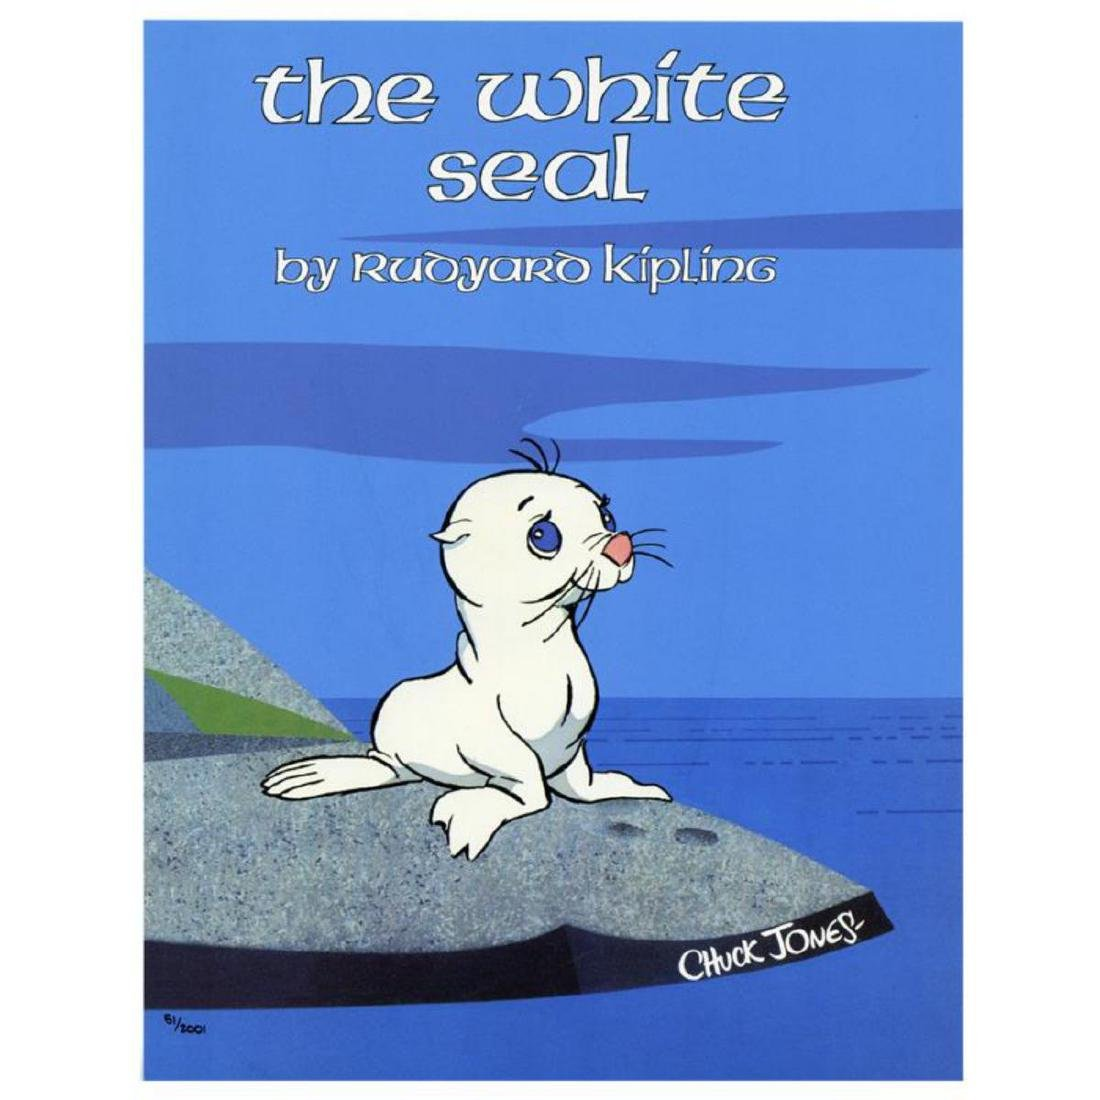 """Chuck Jones """"The White Seal"""" Limited Edition"""